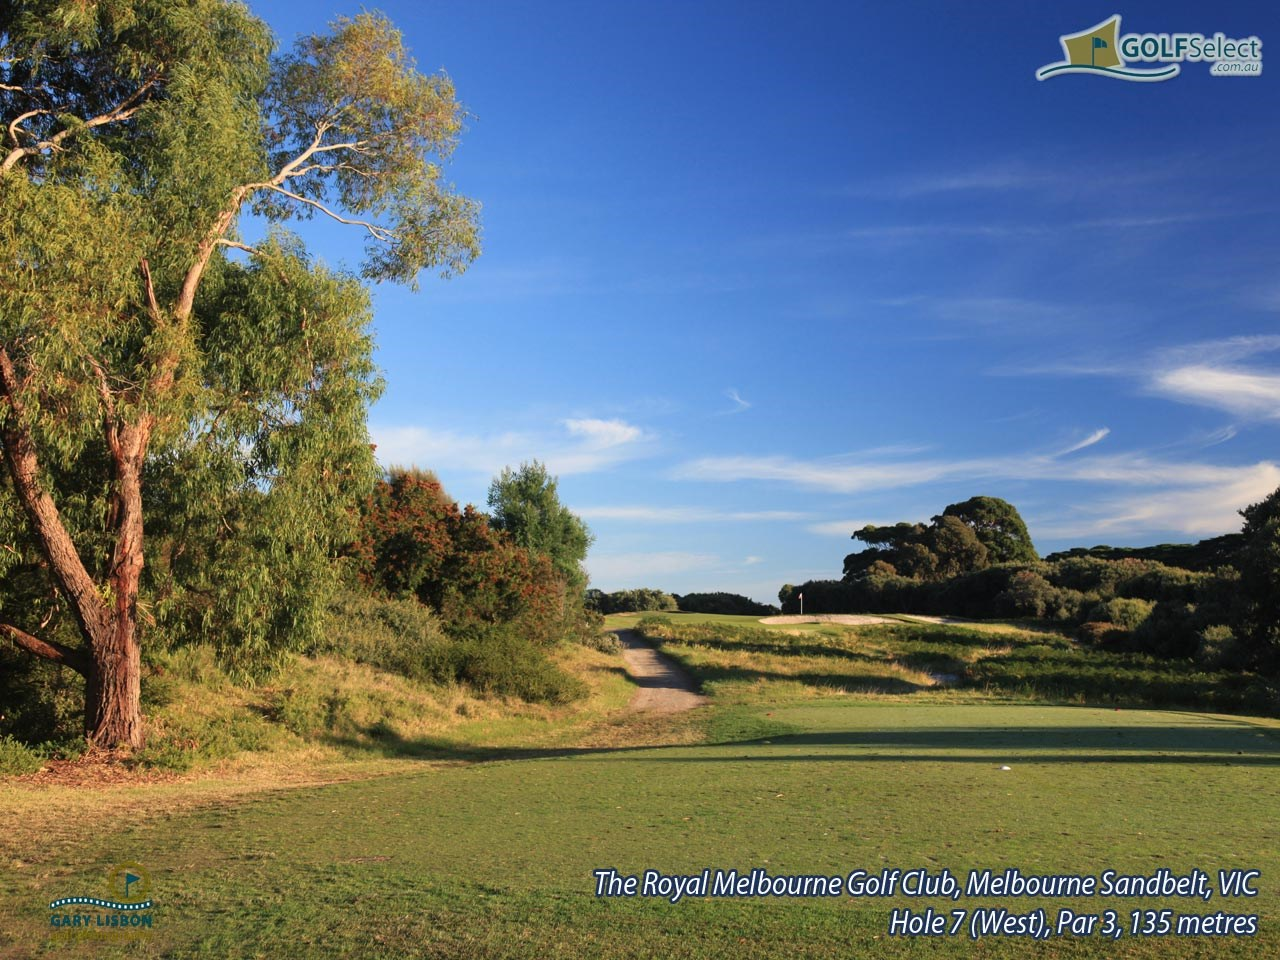 The Royal Melbourne GC (West Course) Hole 7(West), Par 3, 135 metres